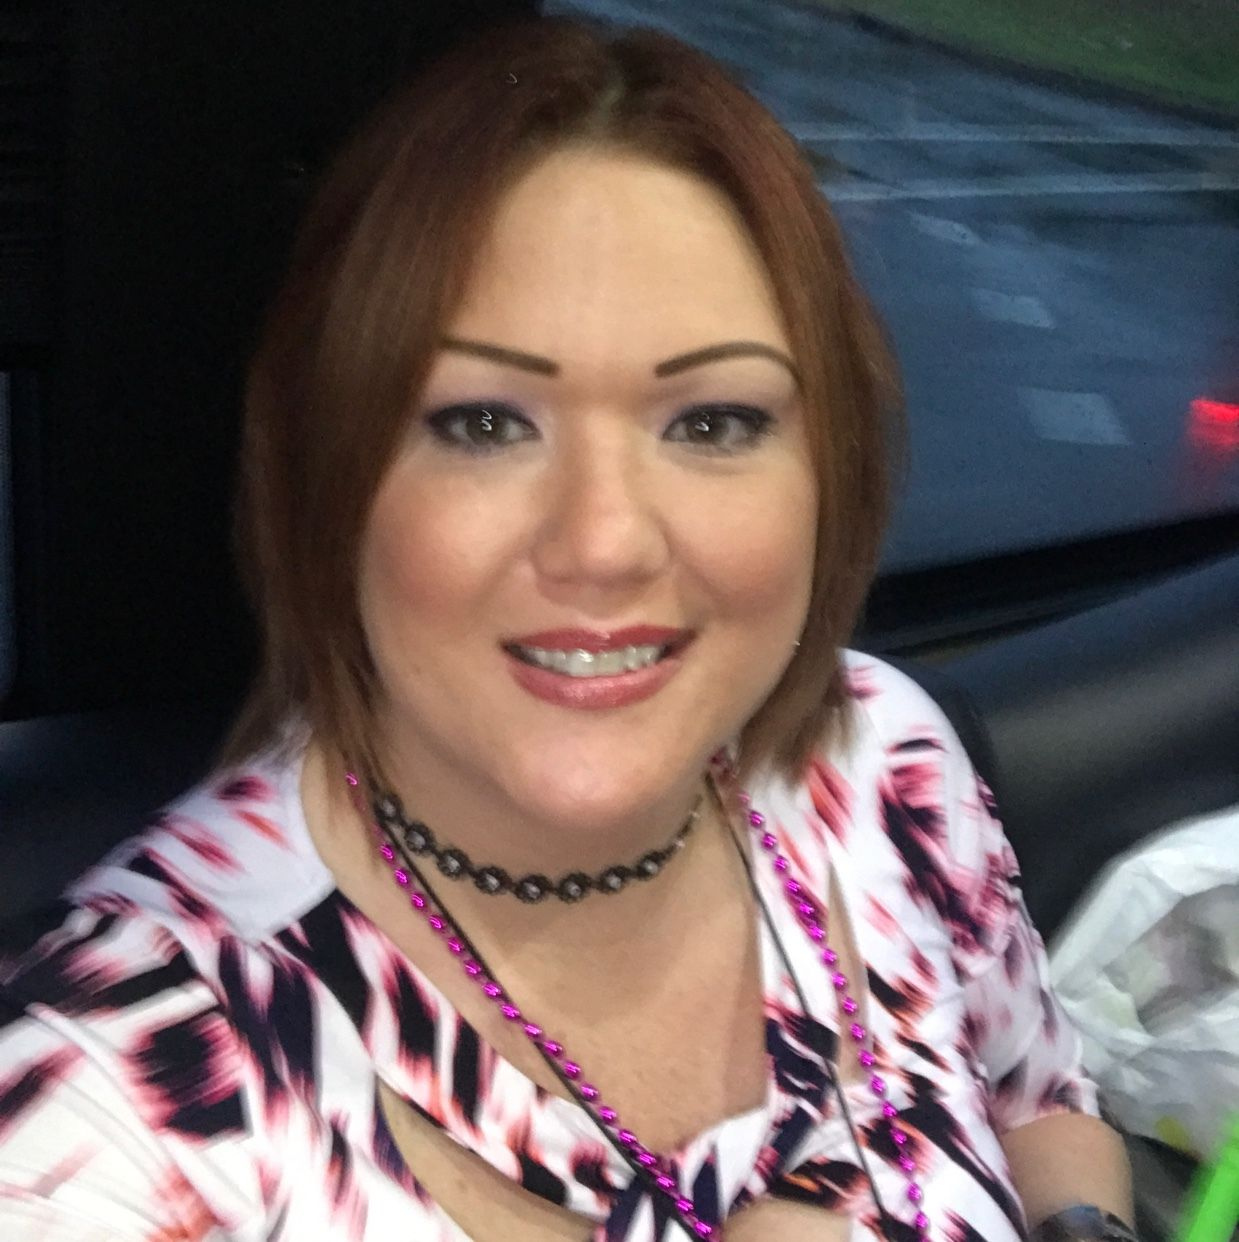 king of prussia divorced singles personals Meet king of prussia single bbw women online interested in meeting new people to date zoosk is used by millions of singles around the world to meet new people to date.